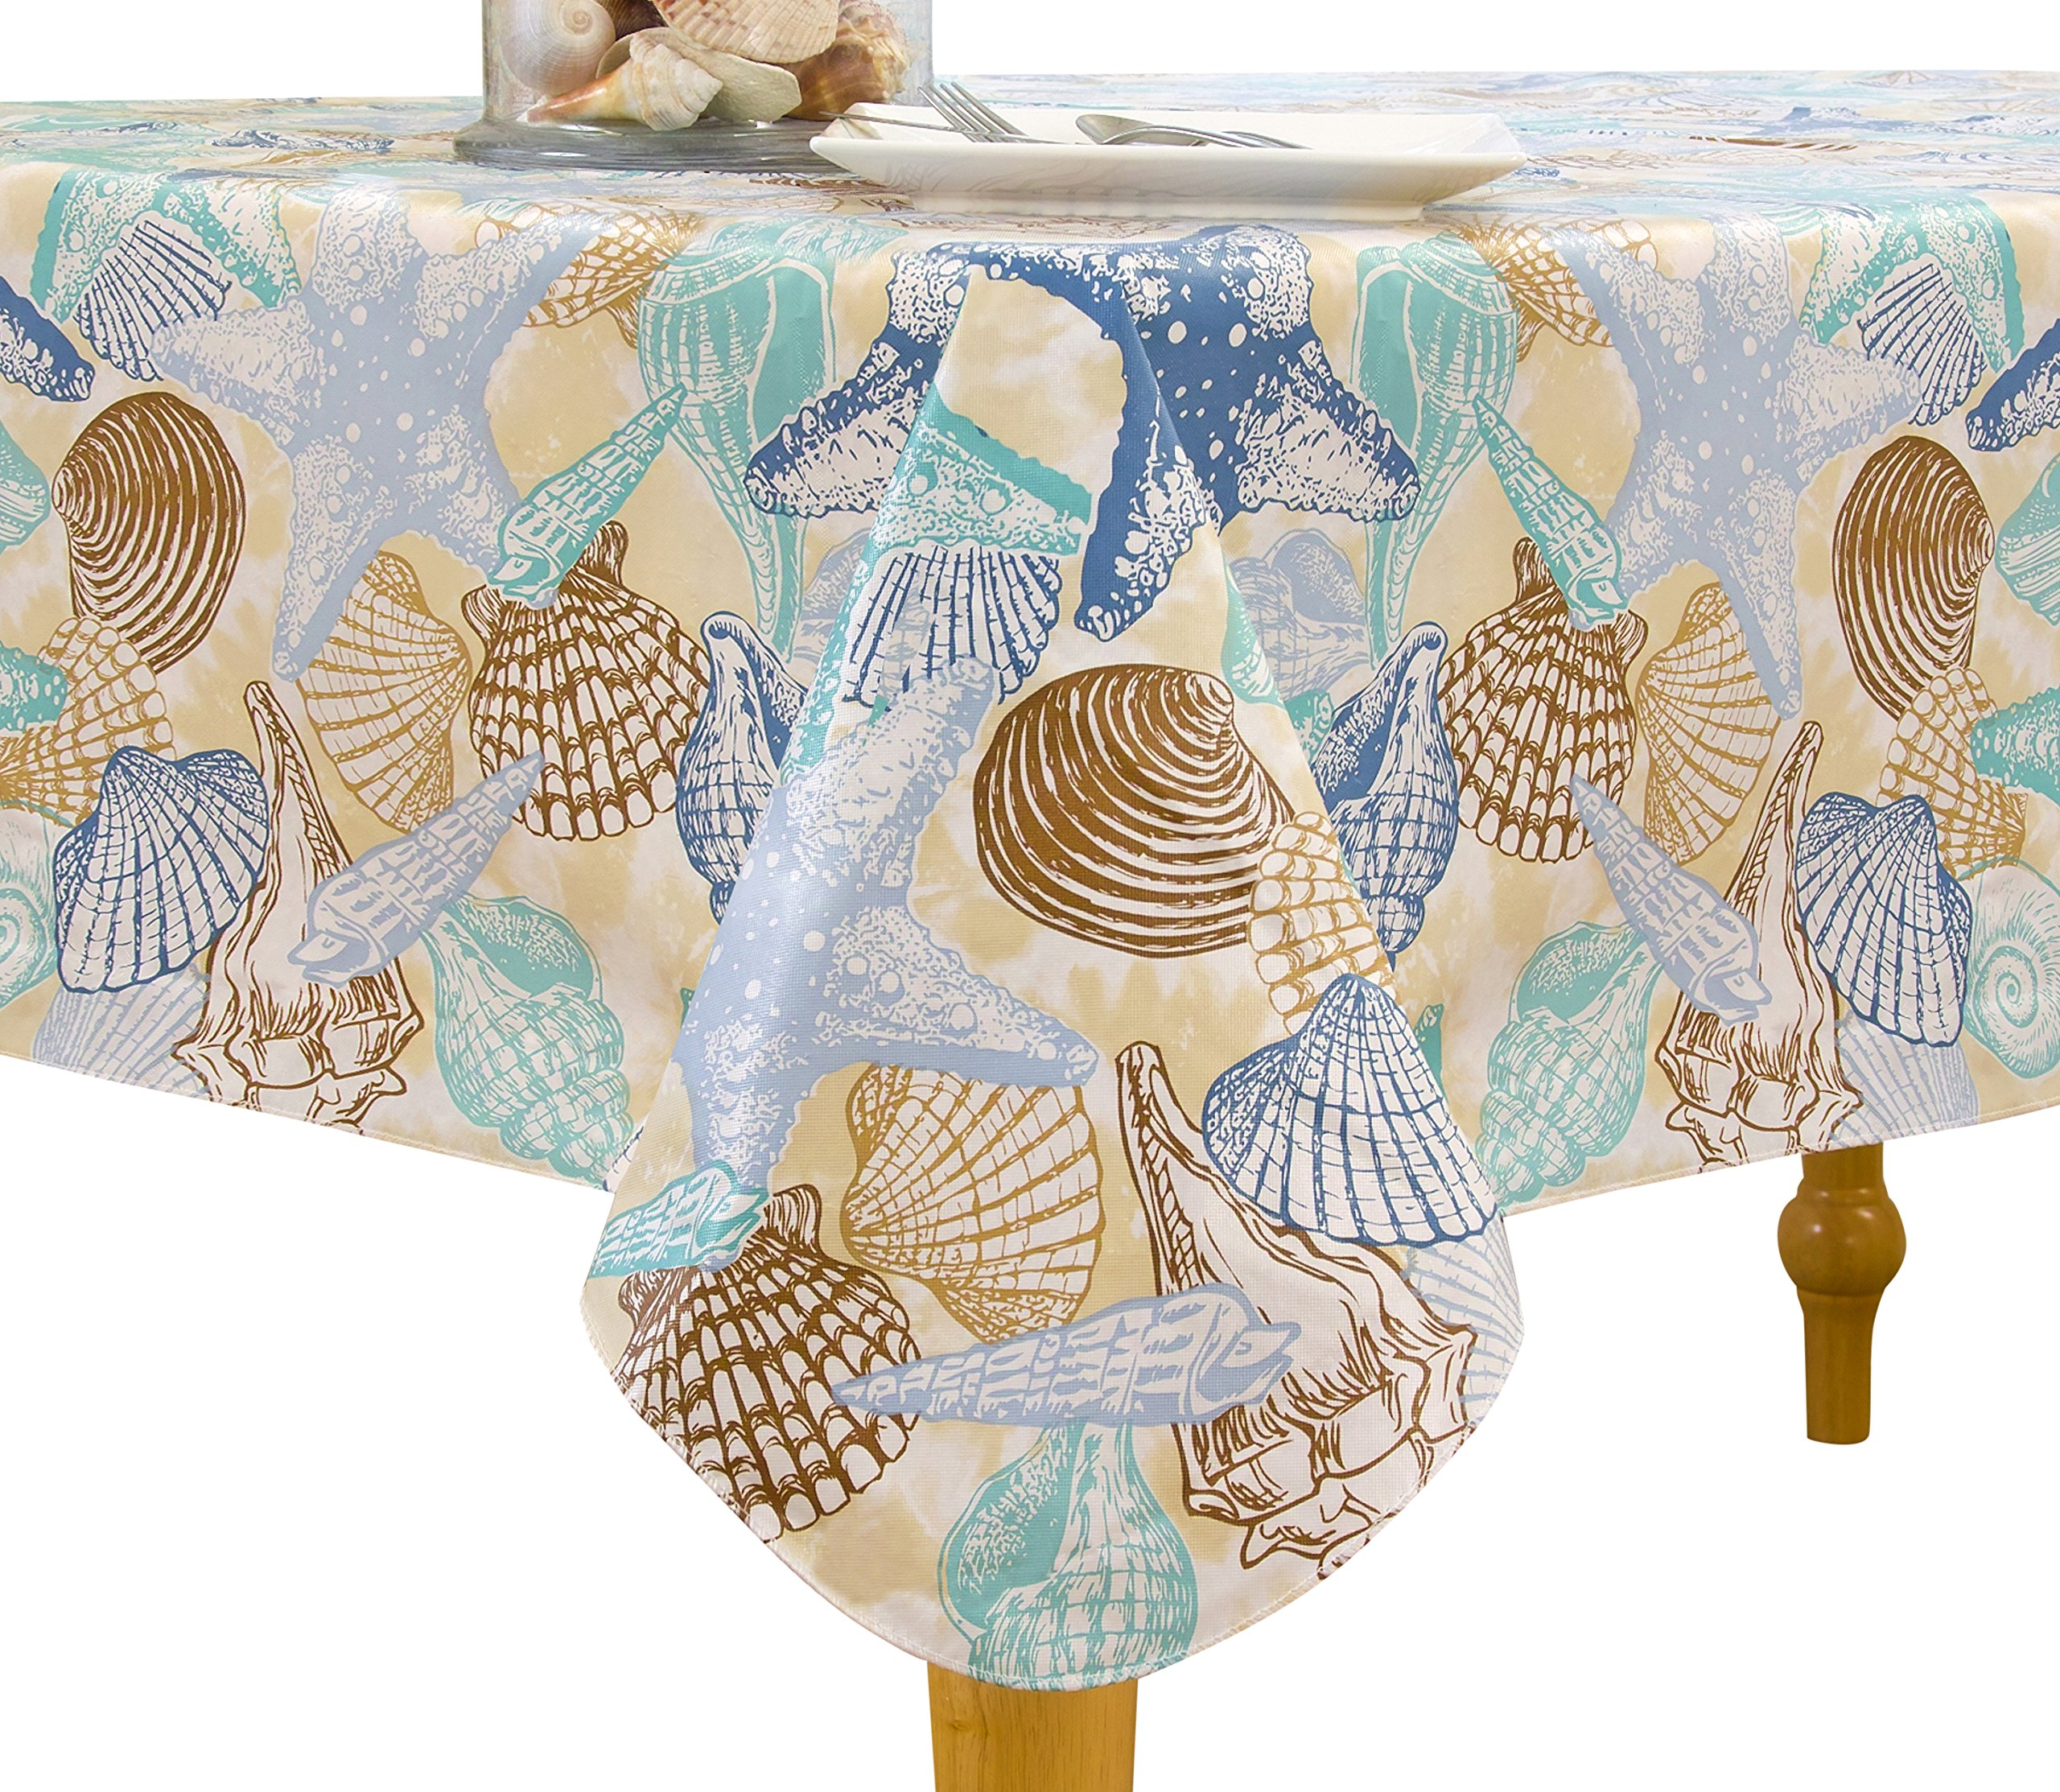 "Elrene Home Fashions Vinyl Tablecloth with Polyester Flannel Backing Shell Beach Easy Care Spillproof, 52""x52"", Sand Brown Blue - Includes one (1) Flannel backed vinyl tablecloth See Size chart for selecting best fit for your table 52 inch x 52 inch square - tablecloths, kitchen-dining-room-table-linens, kitchen-dining-room - A1Q9GOModcL -"